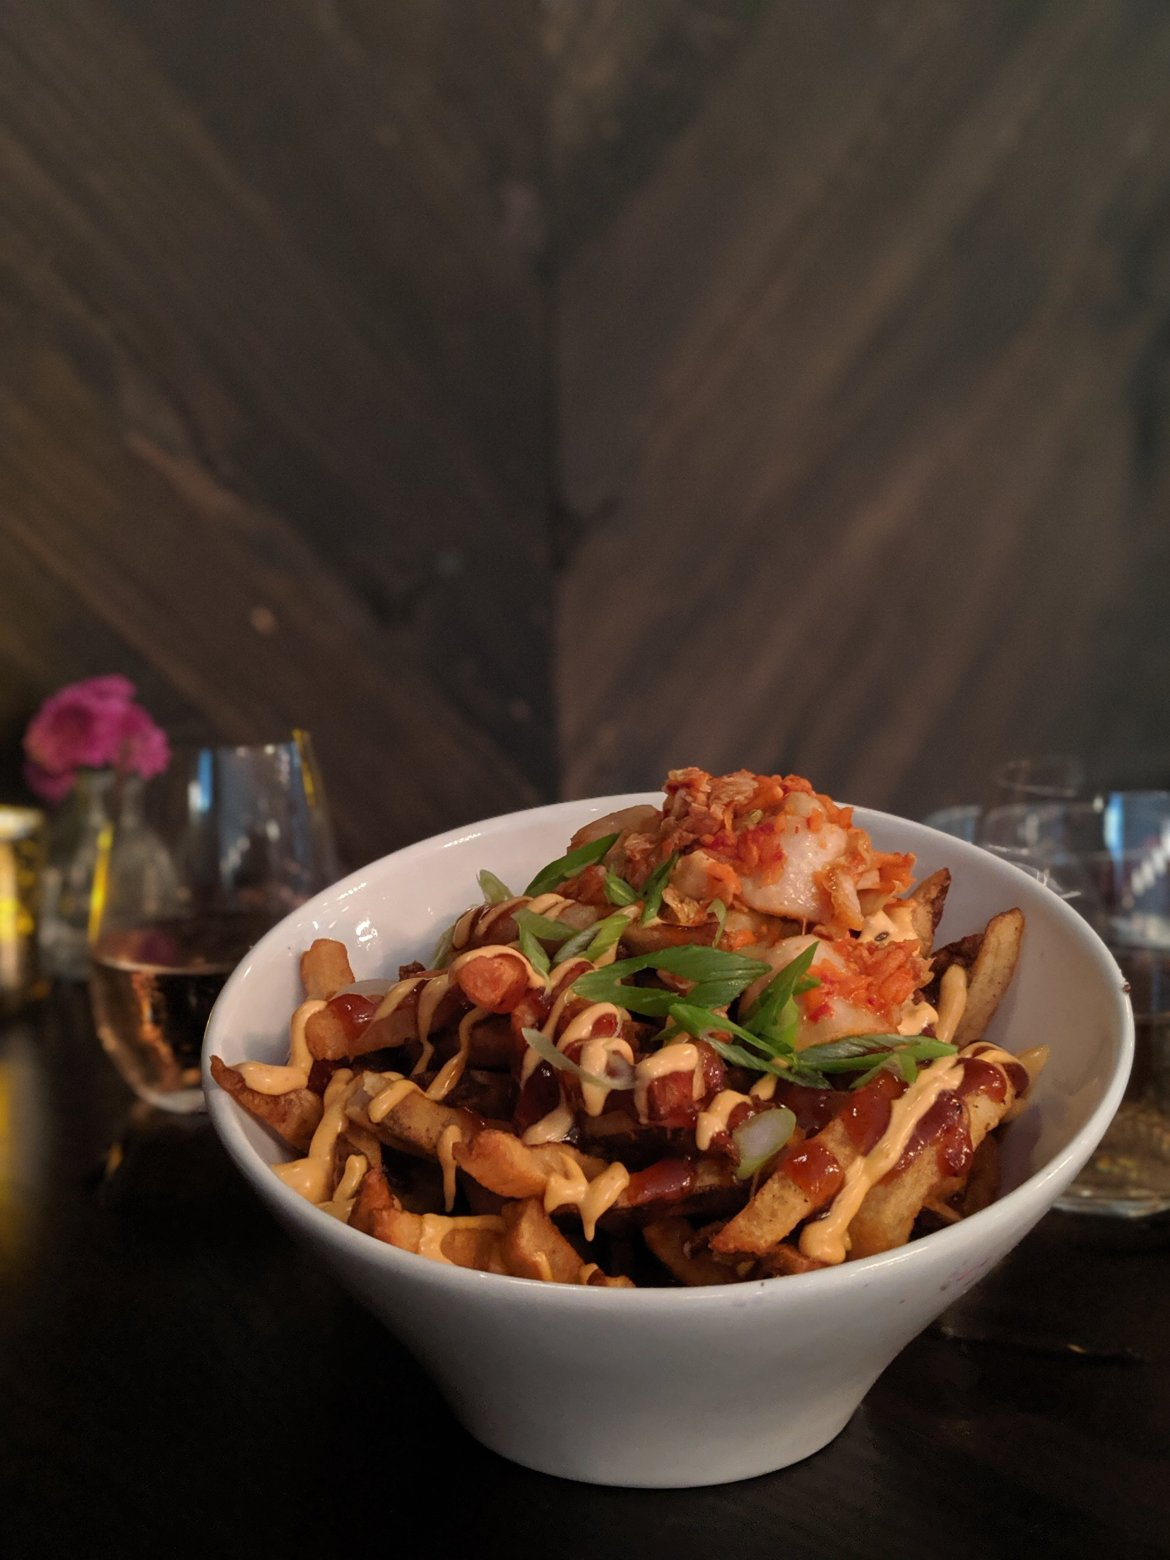 vegan kimchi fries at Modern Love in New York